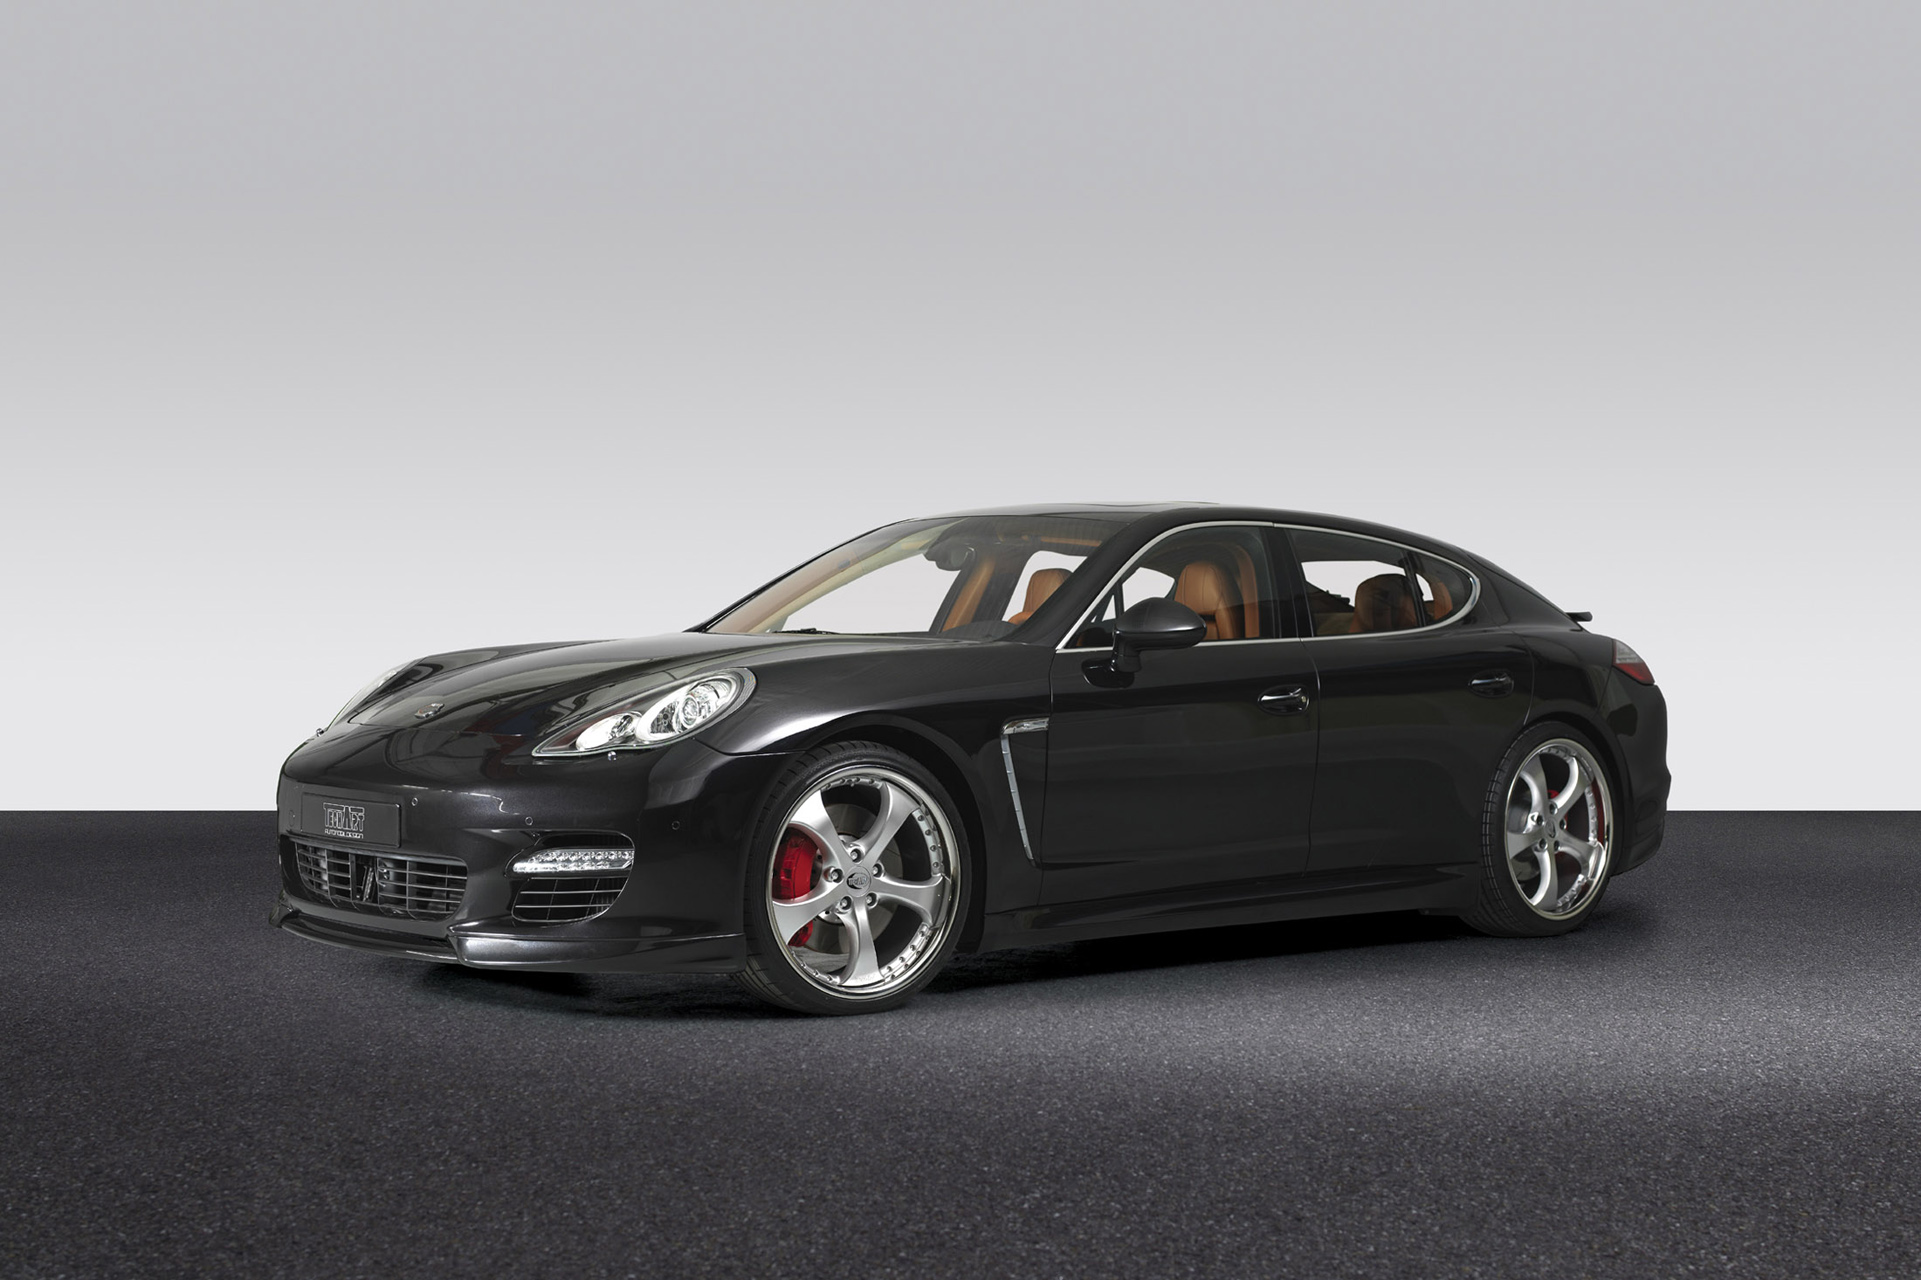 Techart Porsche Panamera photo 67590